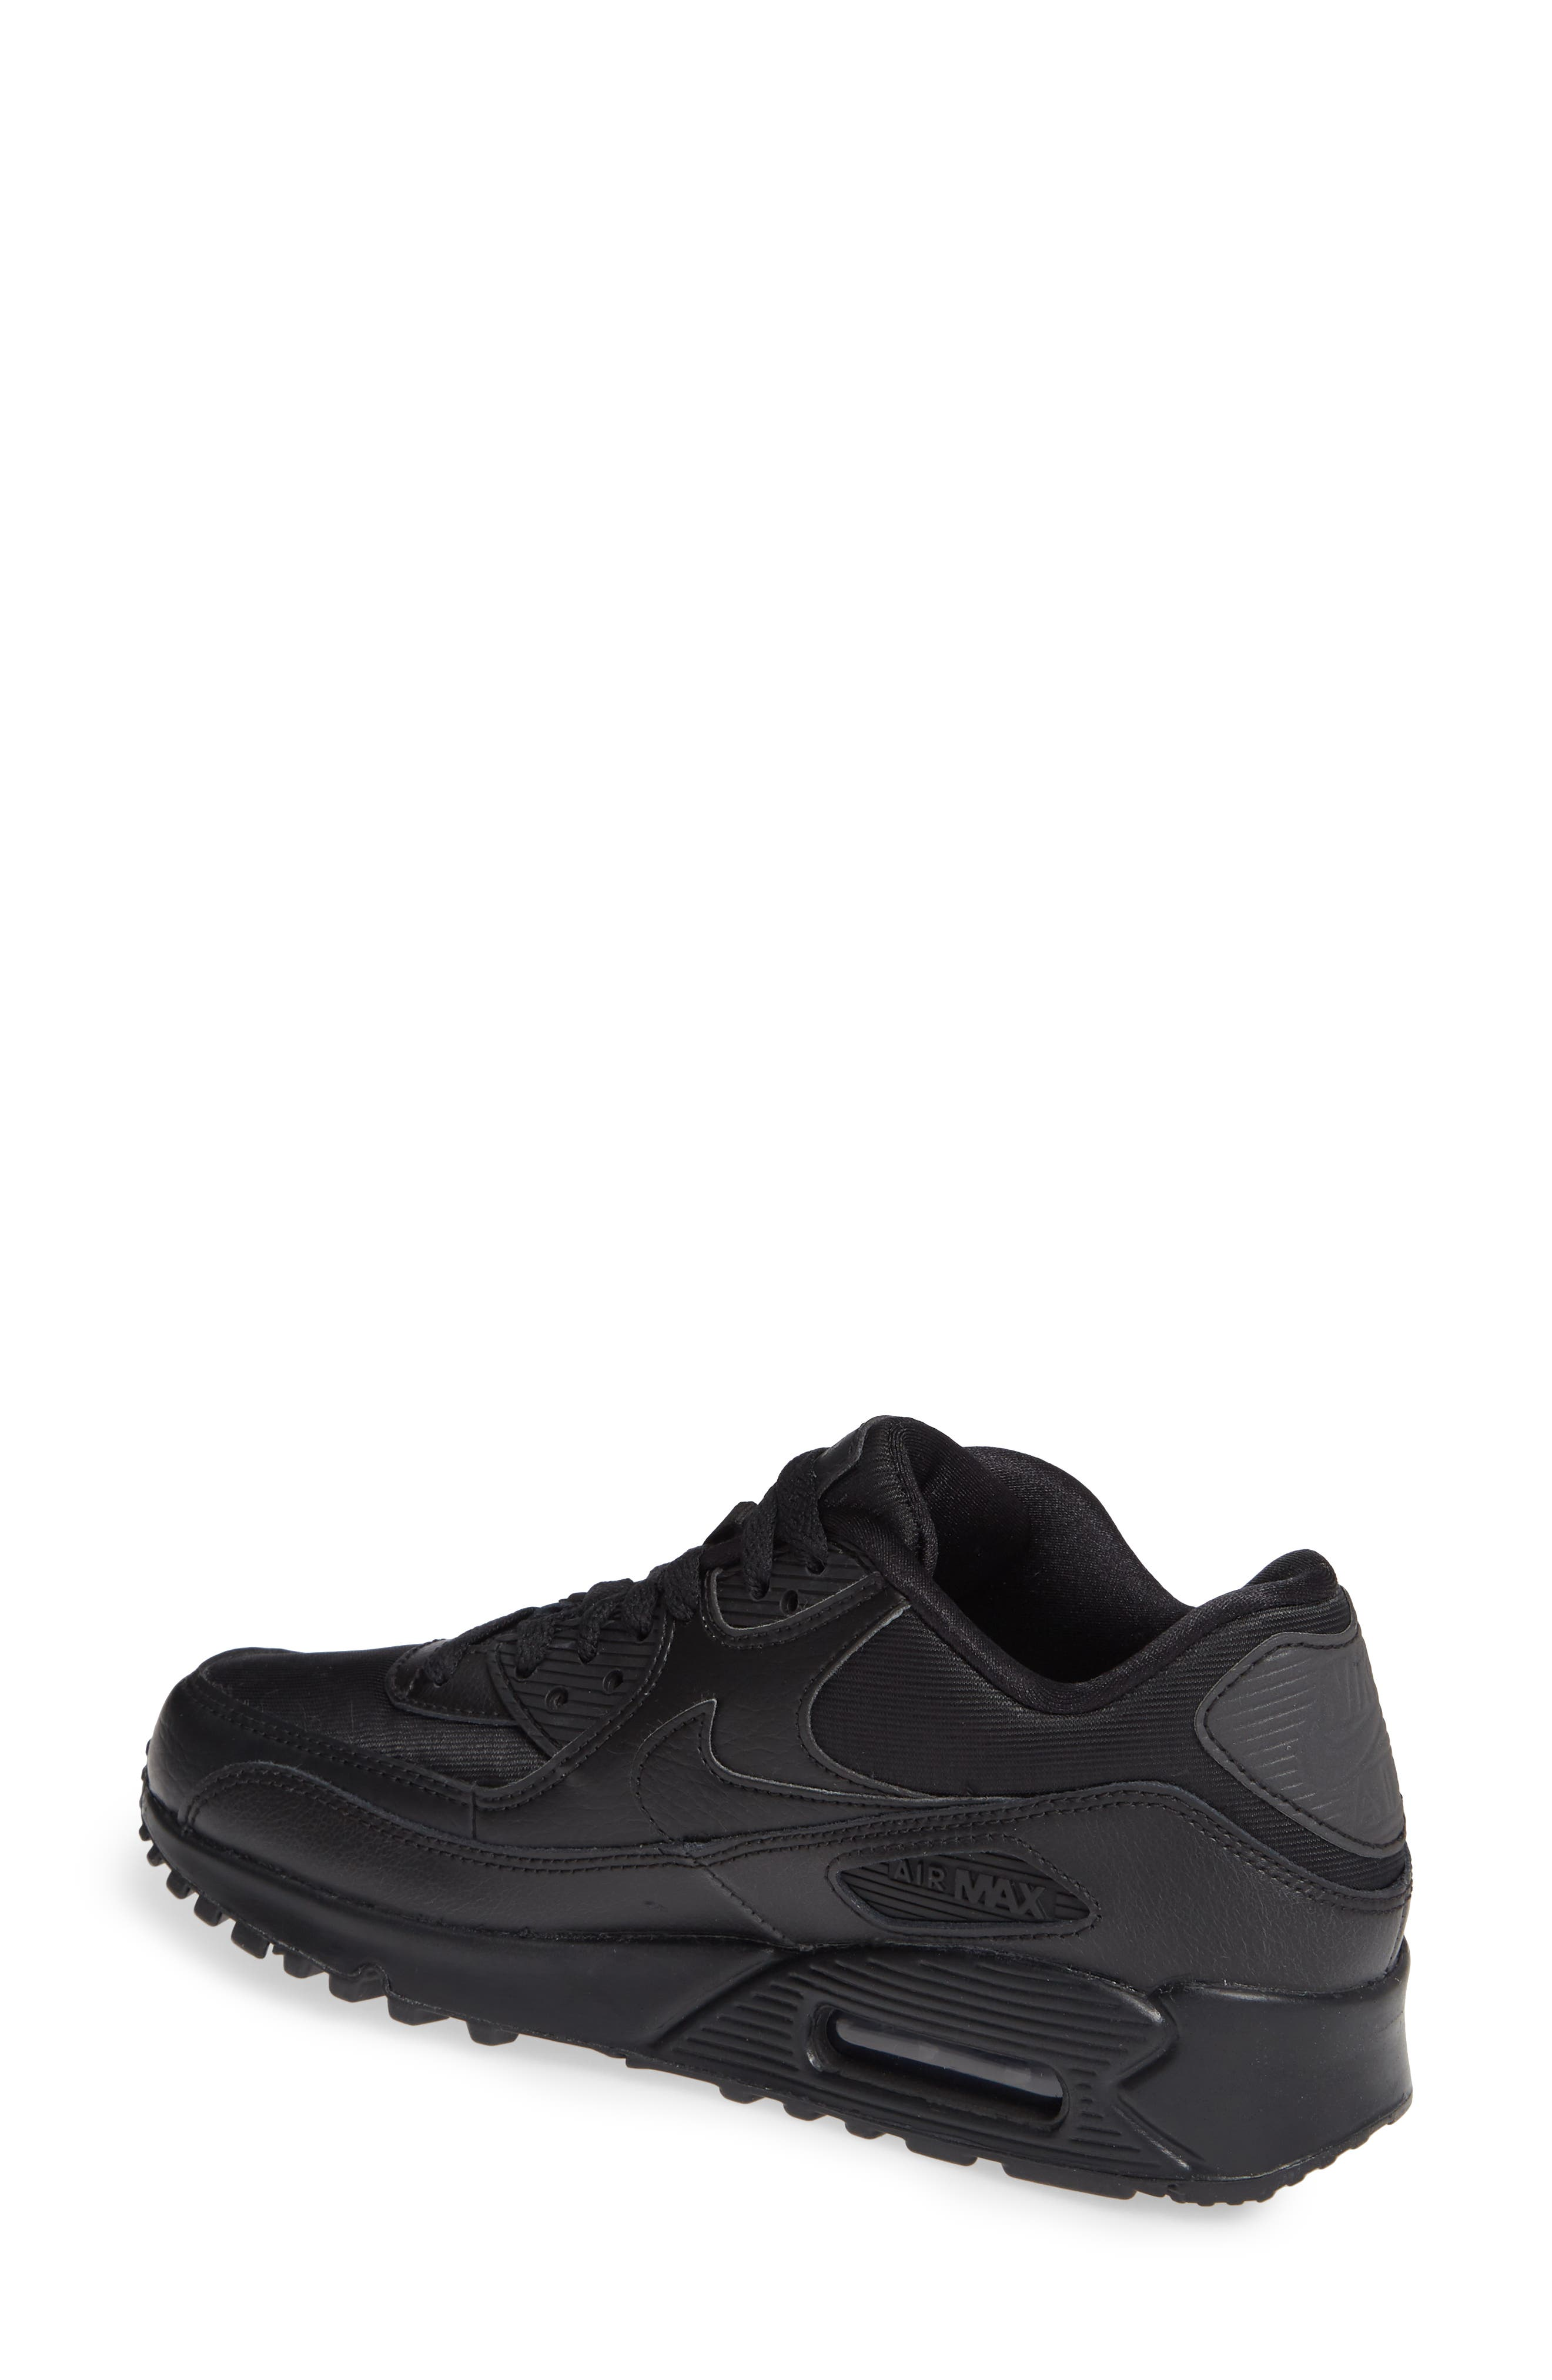 'Air Max 90' Sneaker,                             Alternate thumbnail 2, color,                             BLACK/ BLACK-BLACK